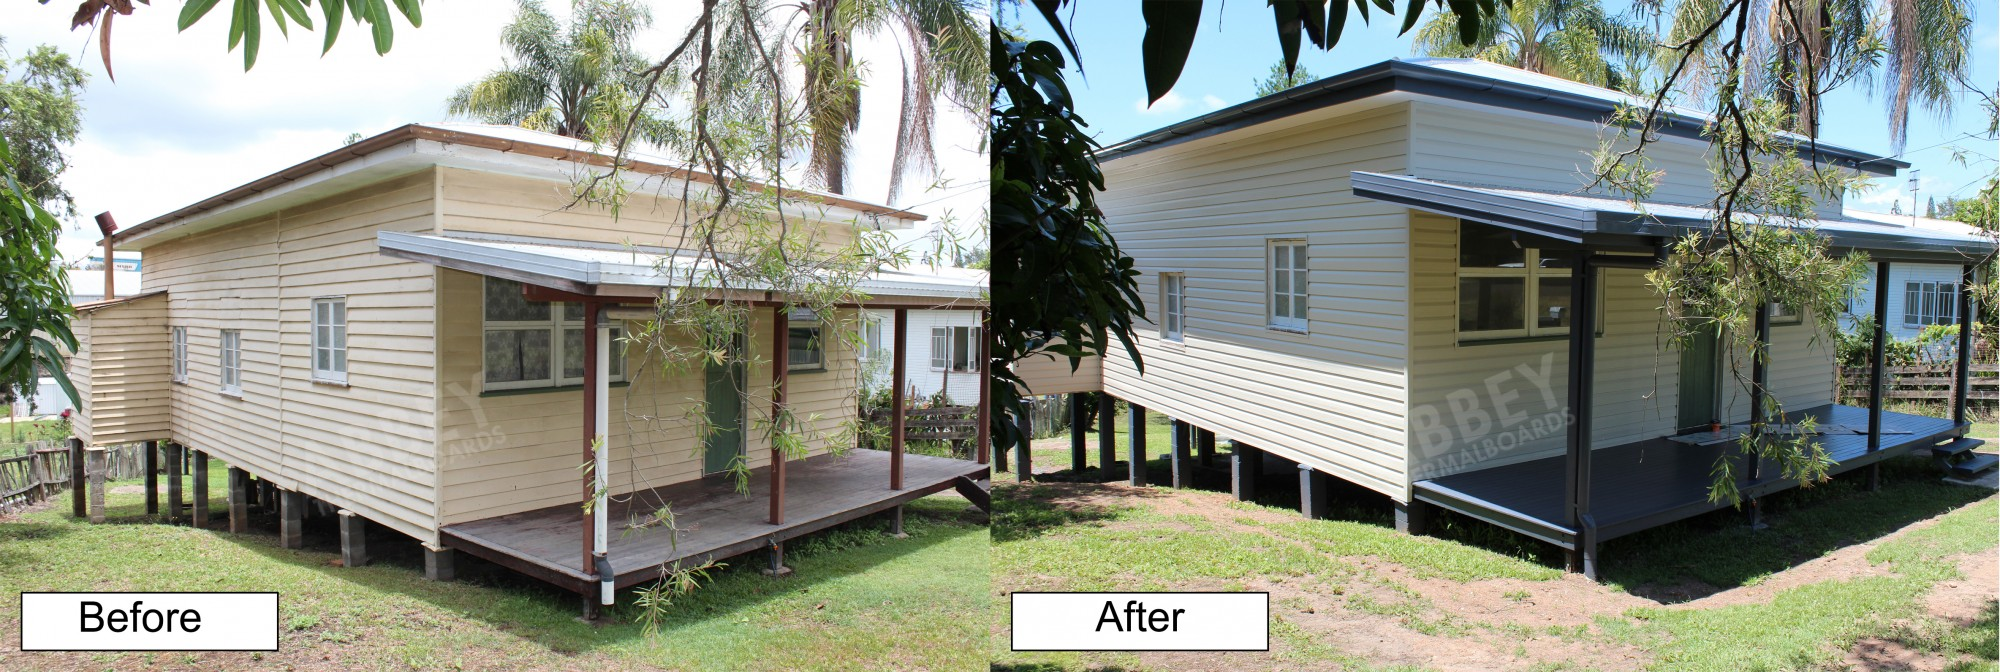 Cladding shown before and after of a rural home.